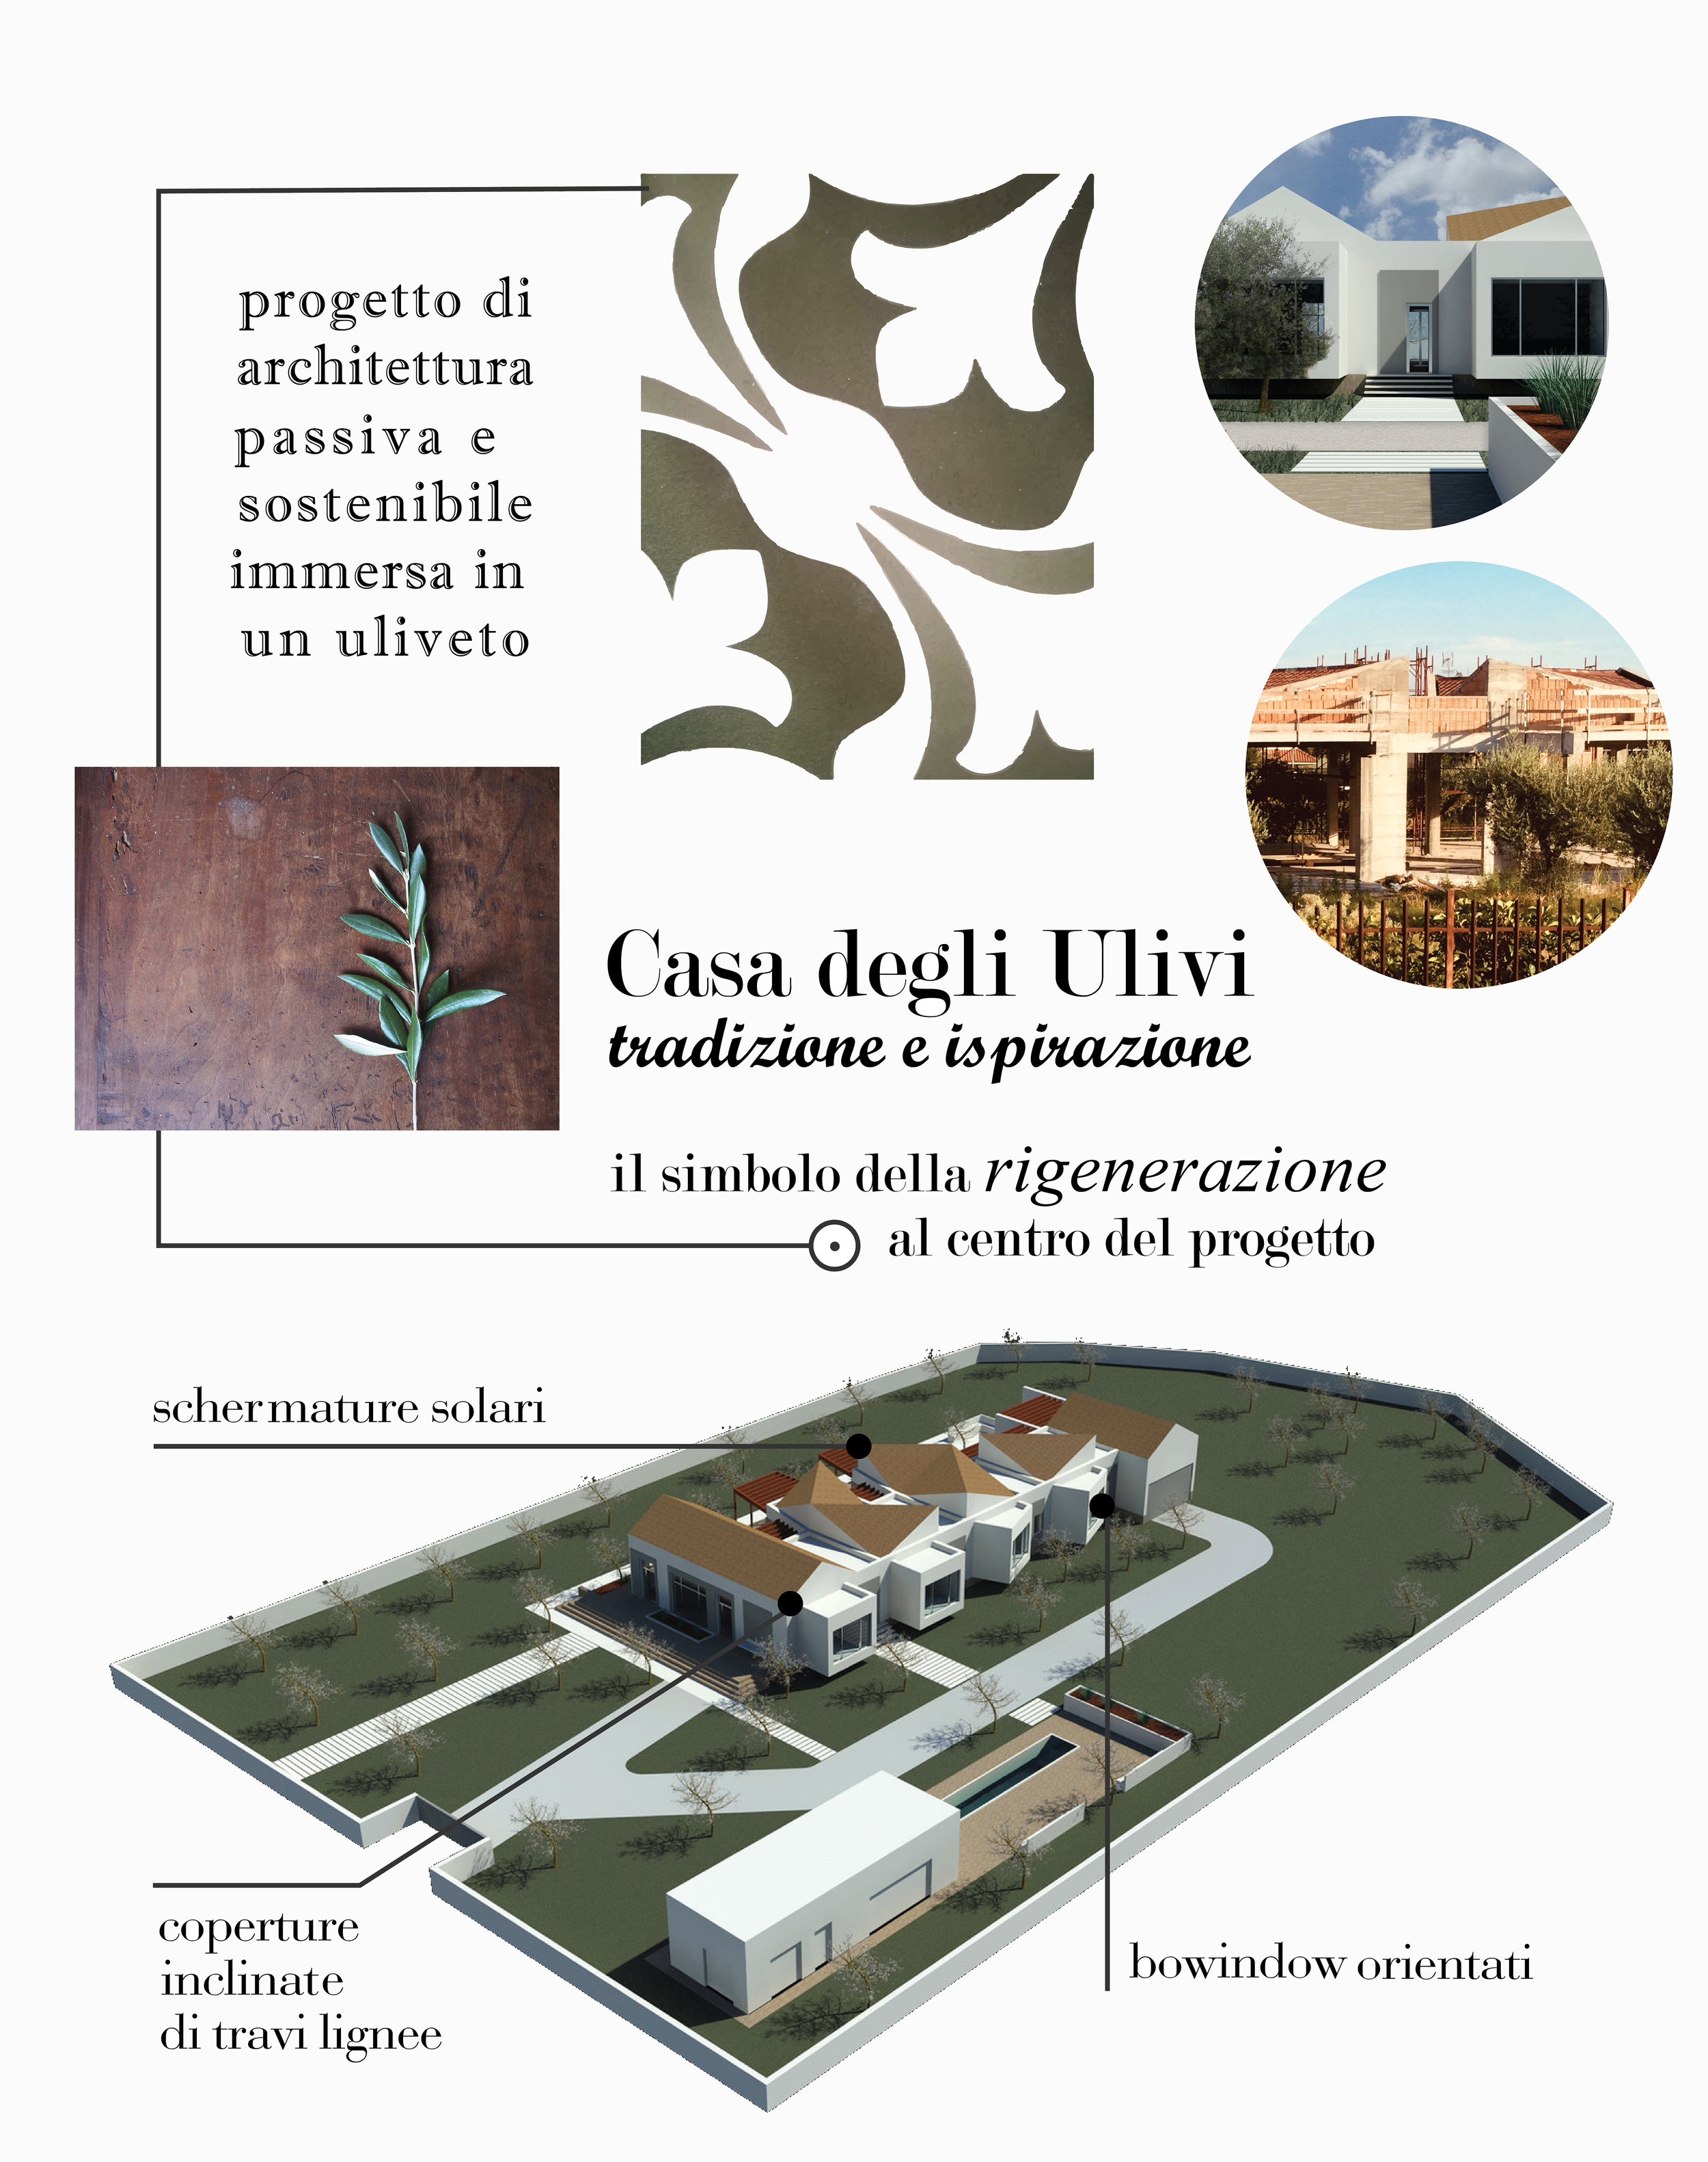 08_casa ulivi_PREVIEW_02_01_2019-01.jpg